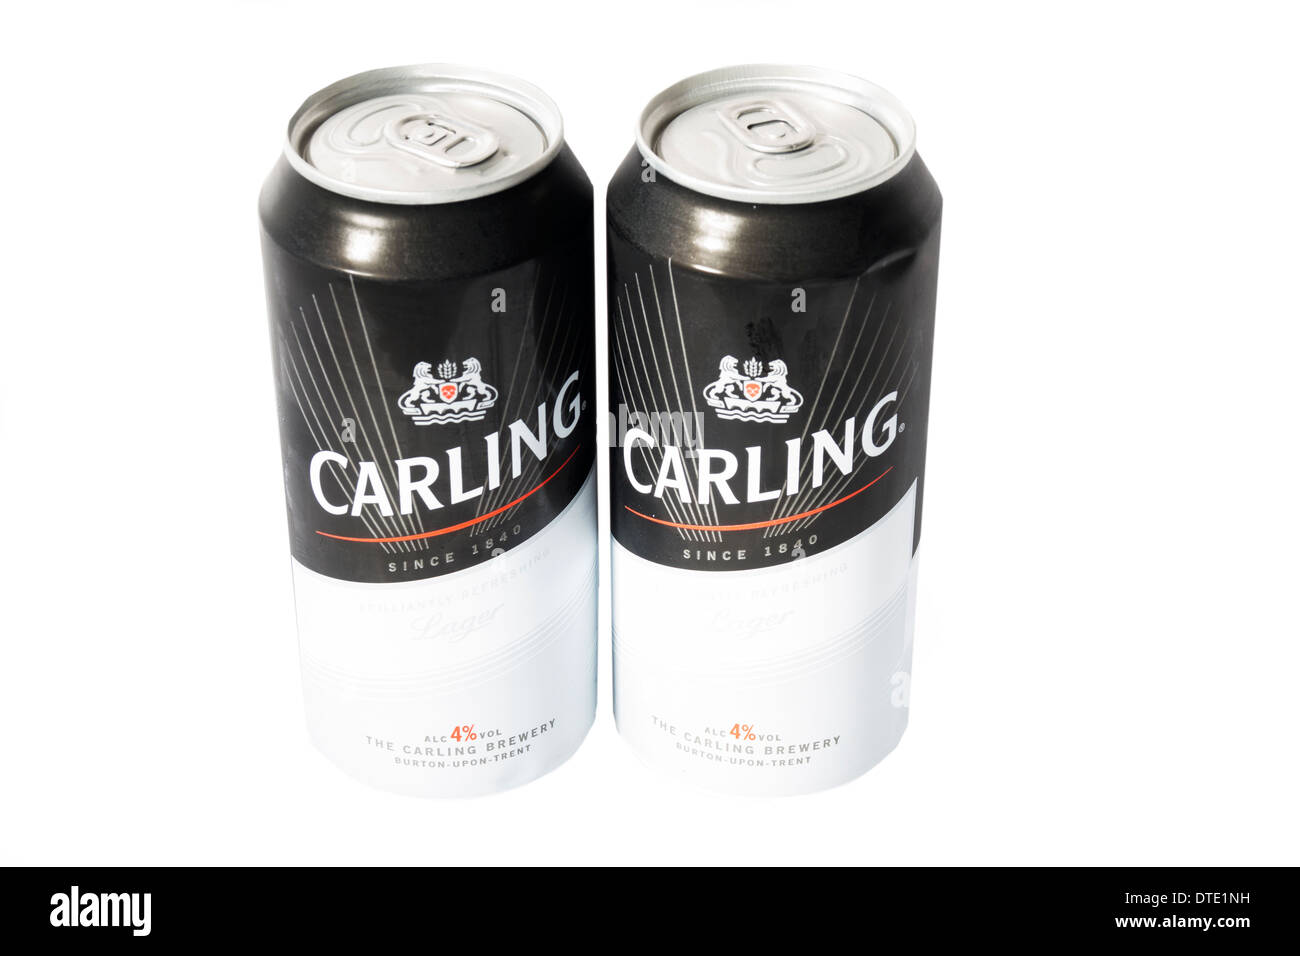 Two cans of Carling lager - Stock Image